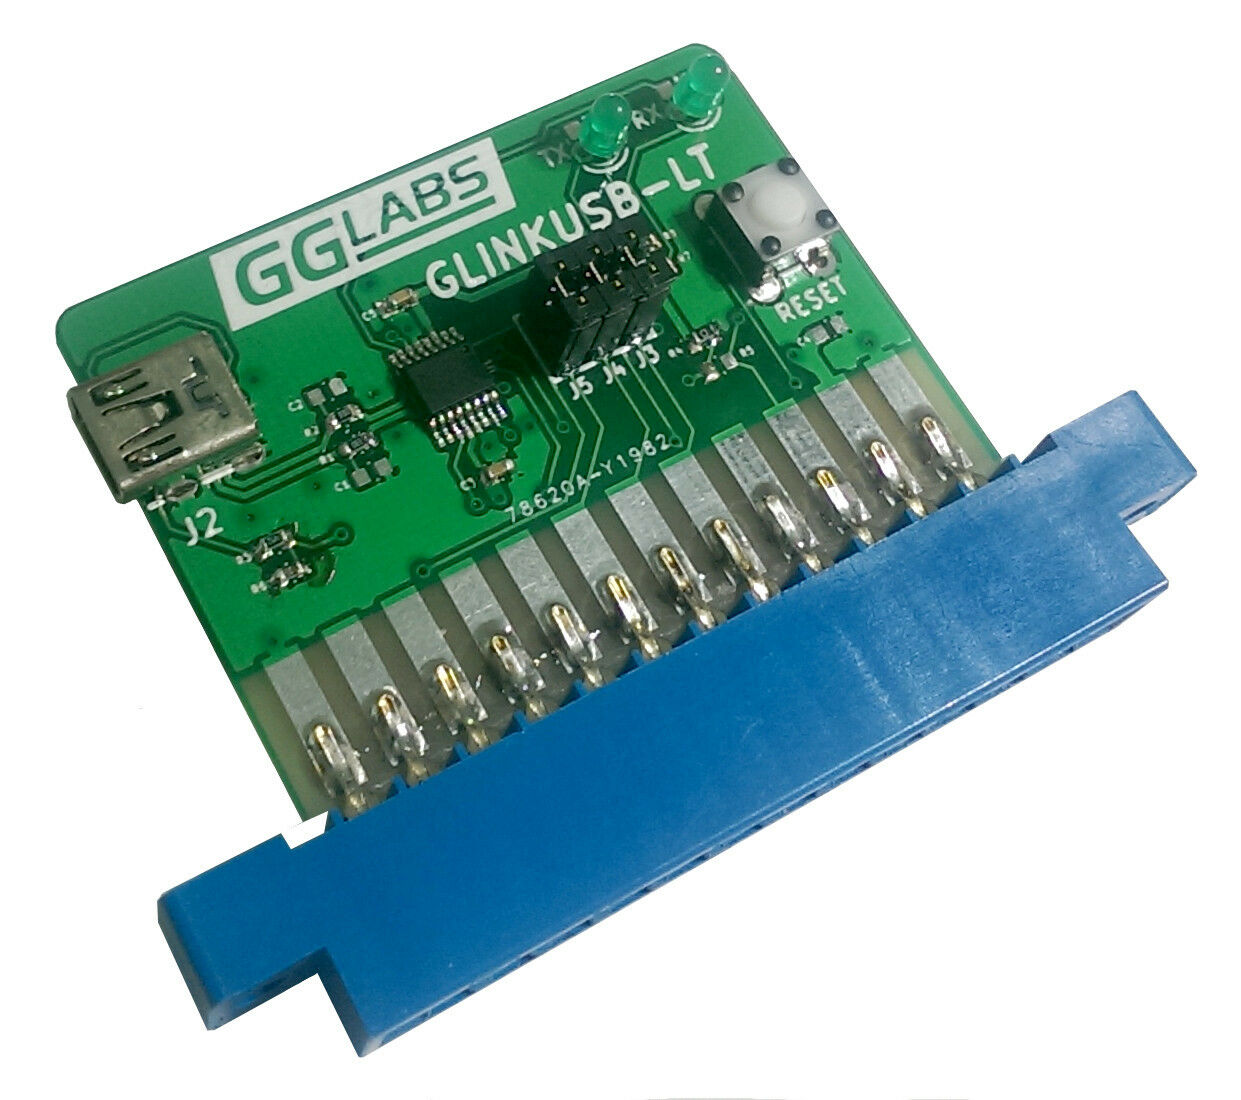 New GGLABS GLINKUSB-LT Commodore 64/128 User Port RS232 to USB - VIC-1011/UP9600